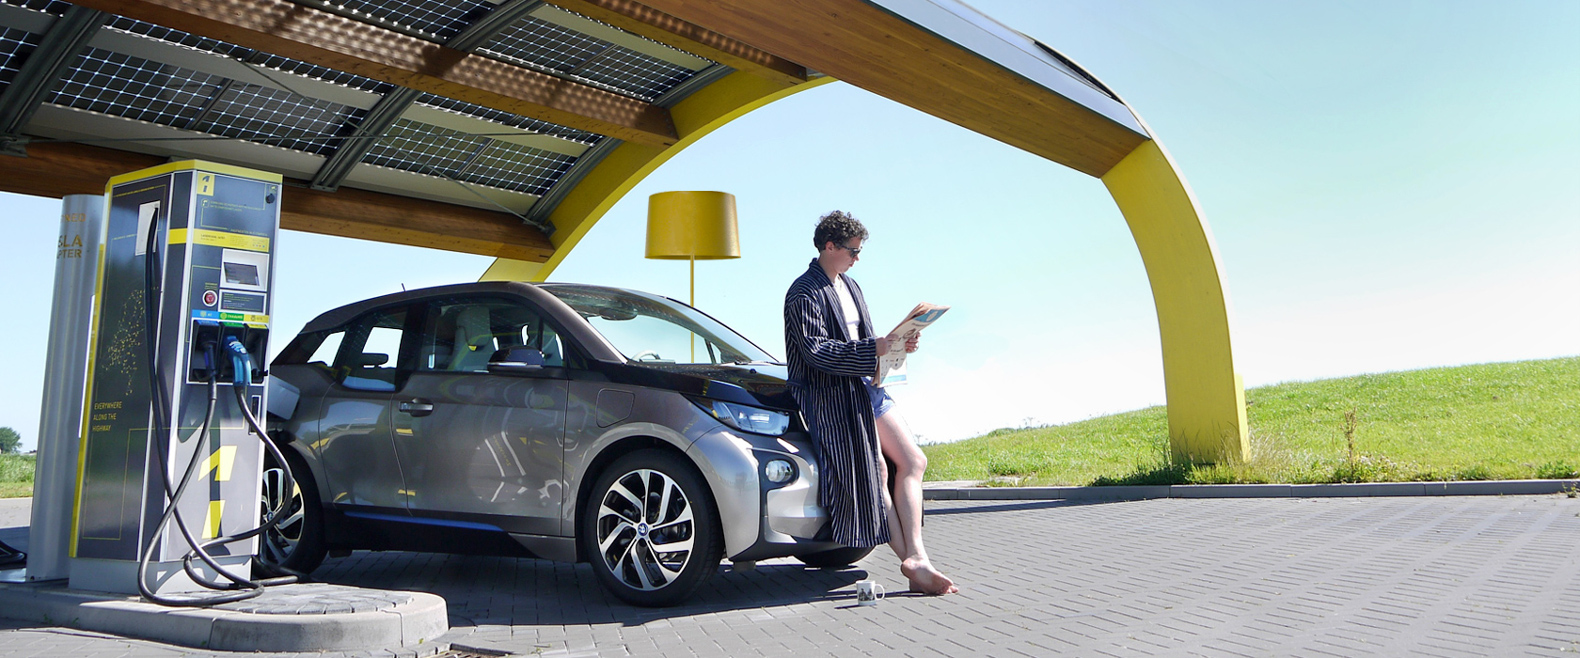 Fleet Of Solar Ed Charging Stations Prepares The Netherlands For Impending Ev Revolution